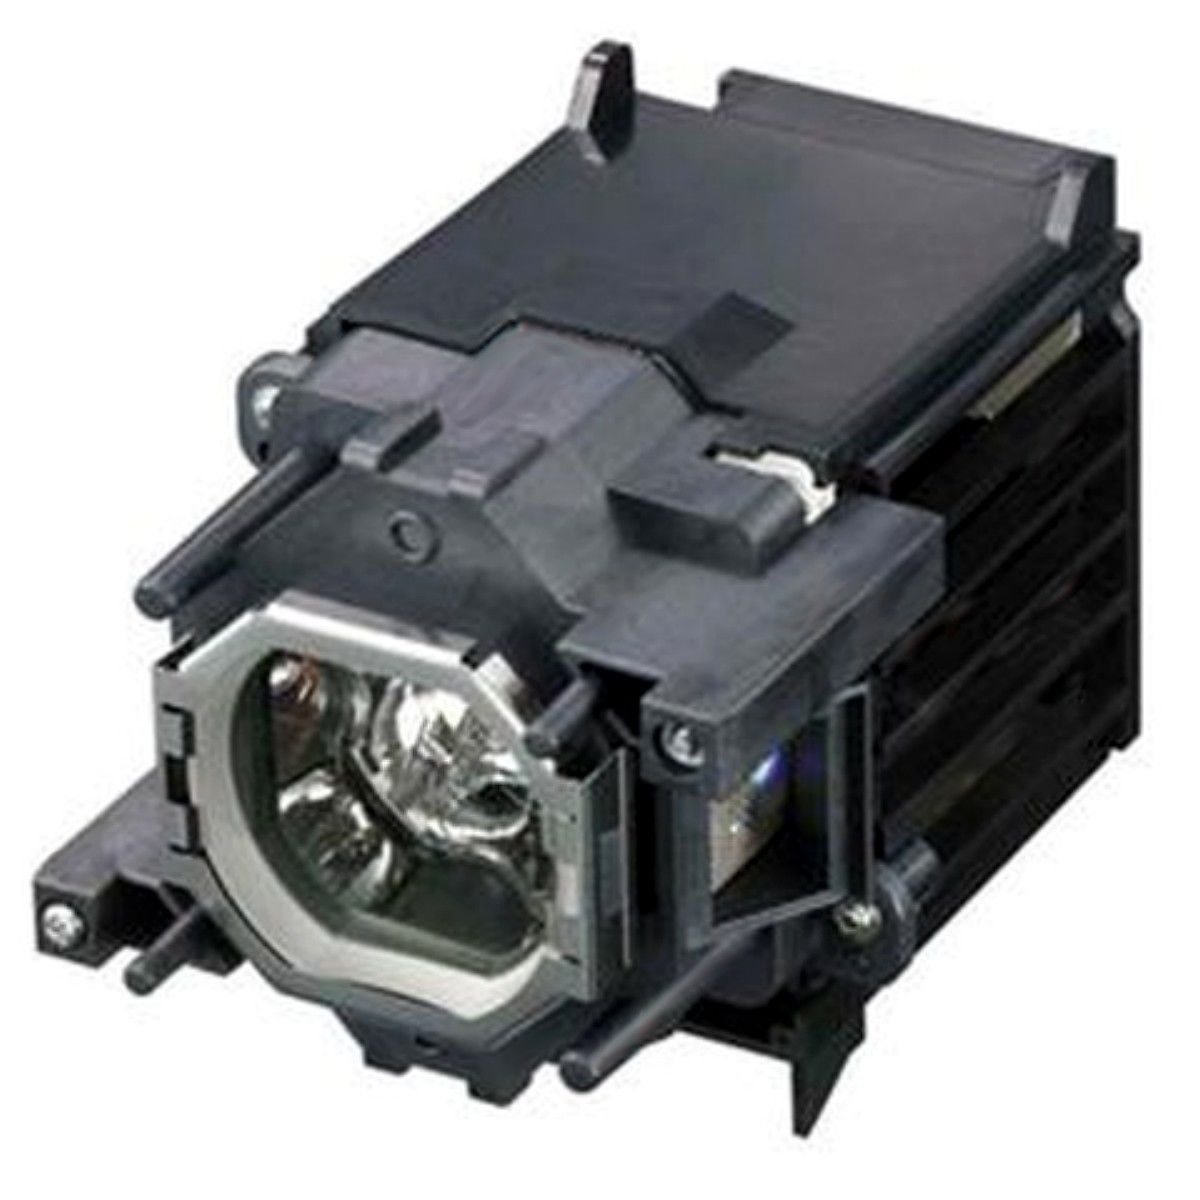 Projector Lamp Bulb LMP-F272 LMPF272 for SONY VPL-FX35 VPL-FH30 with housing projector lamp with housing lmp f272 bulb for sony vpl fx35 vpl fh30 vpl fh31 vpl fh36 vpl fx37 vpl f401h vpl f400h vpl f500x